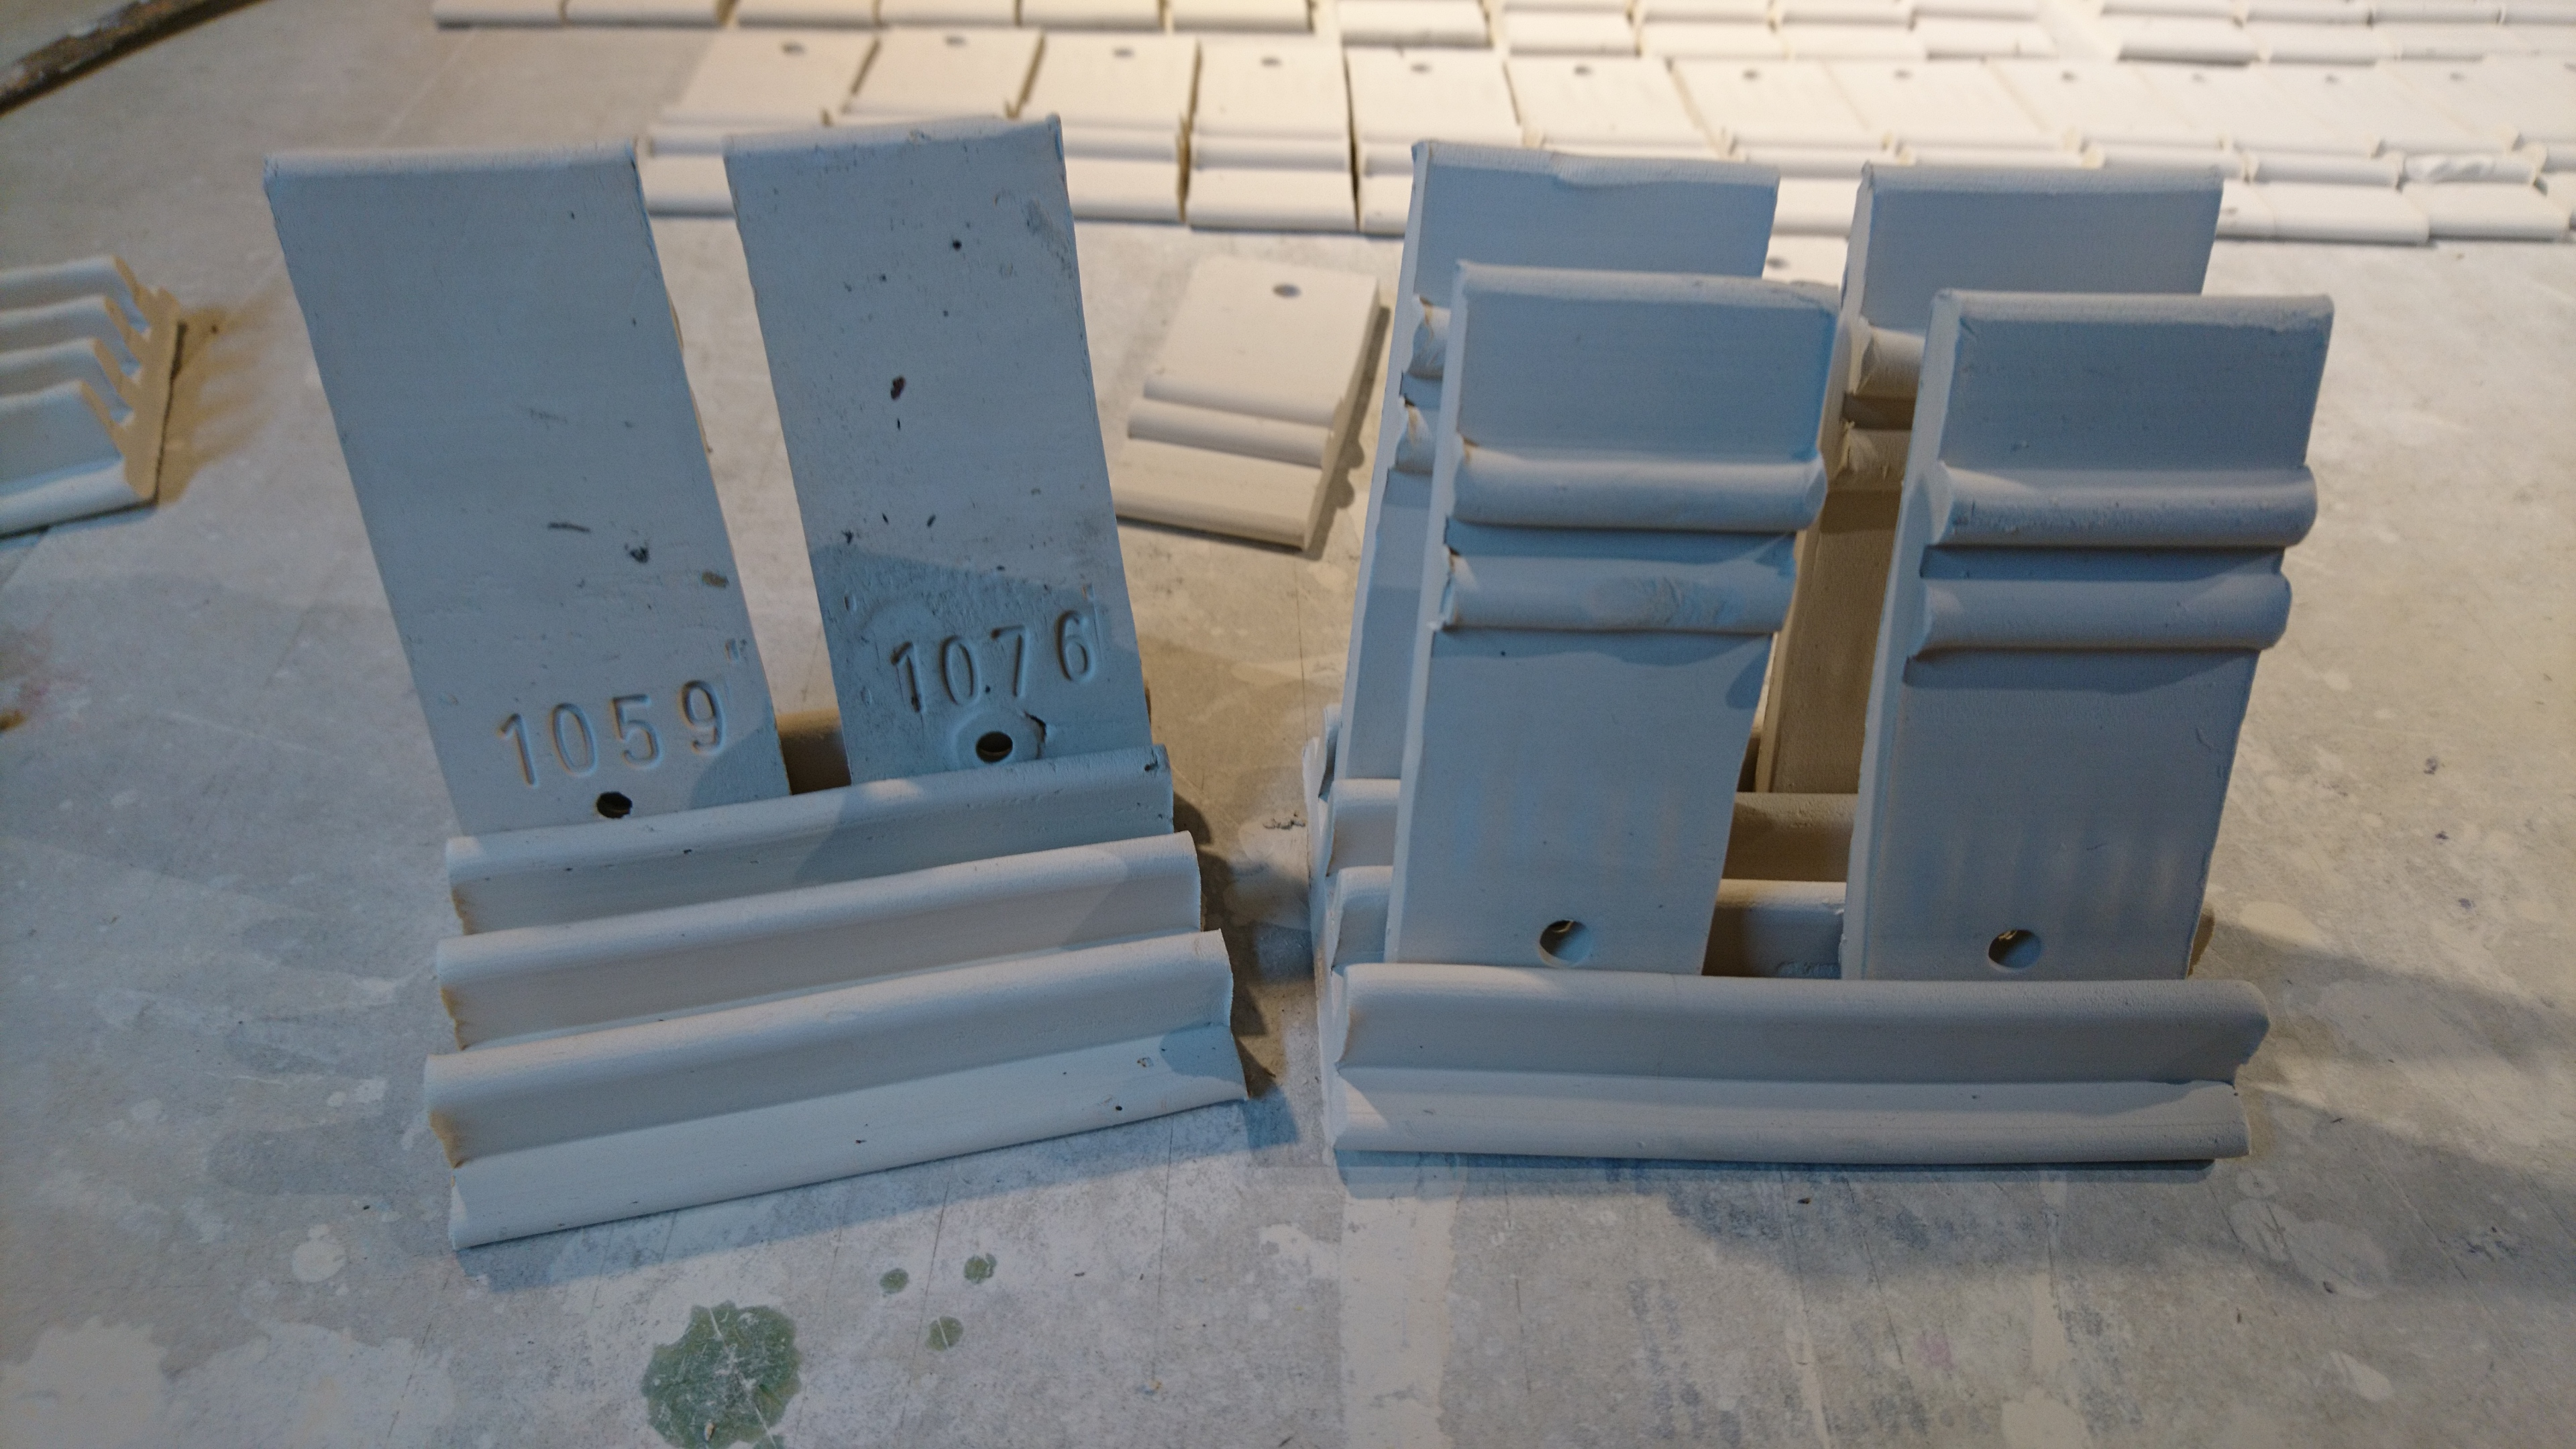 test tiles in their holder